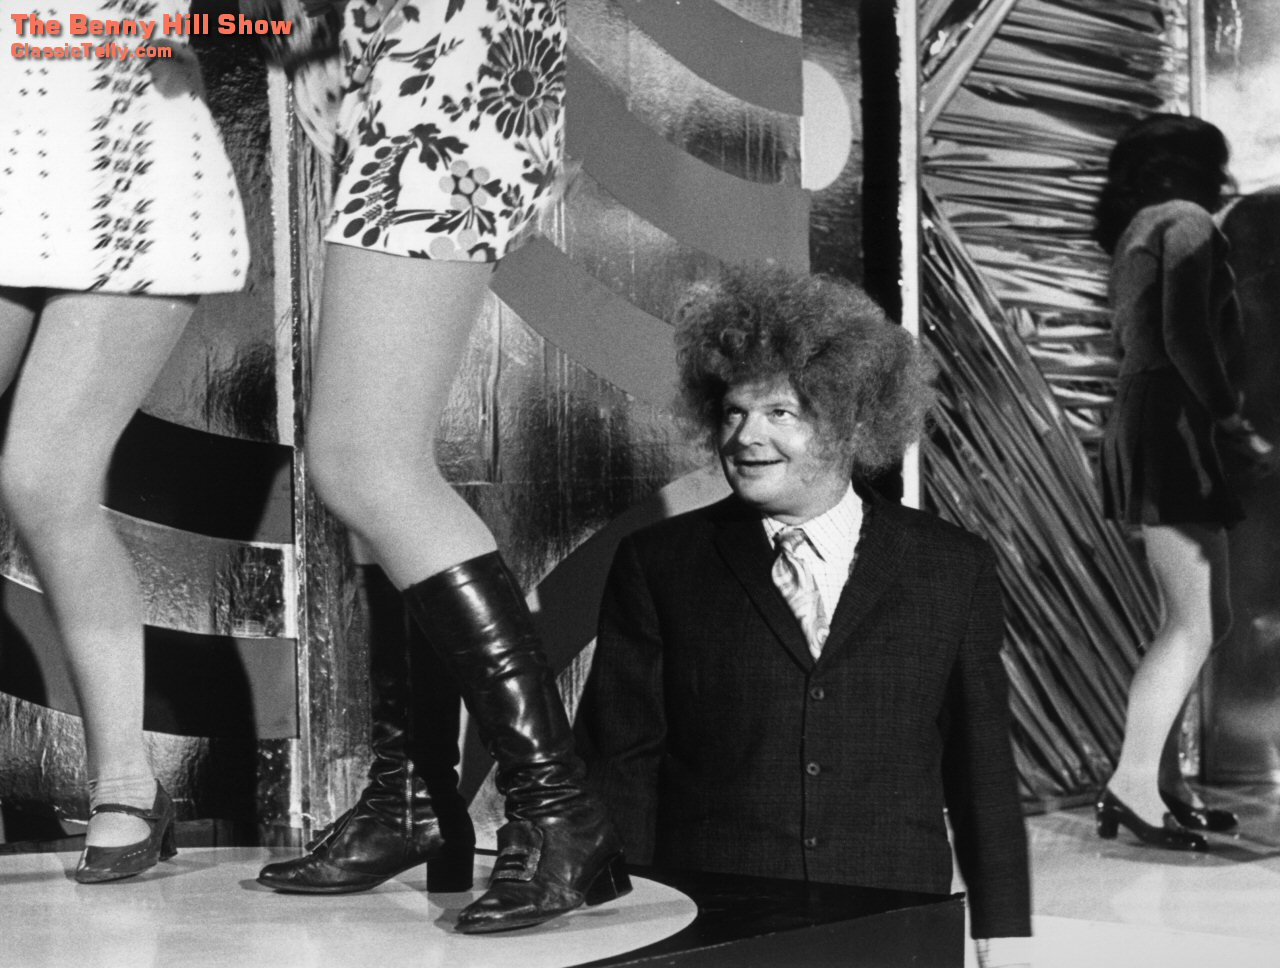 Classic Telly The Benny Hill Show Desktop Wallpaper